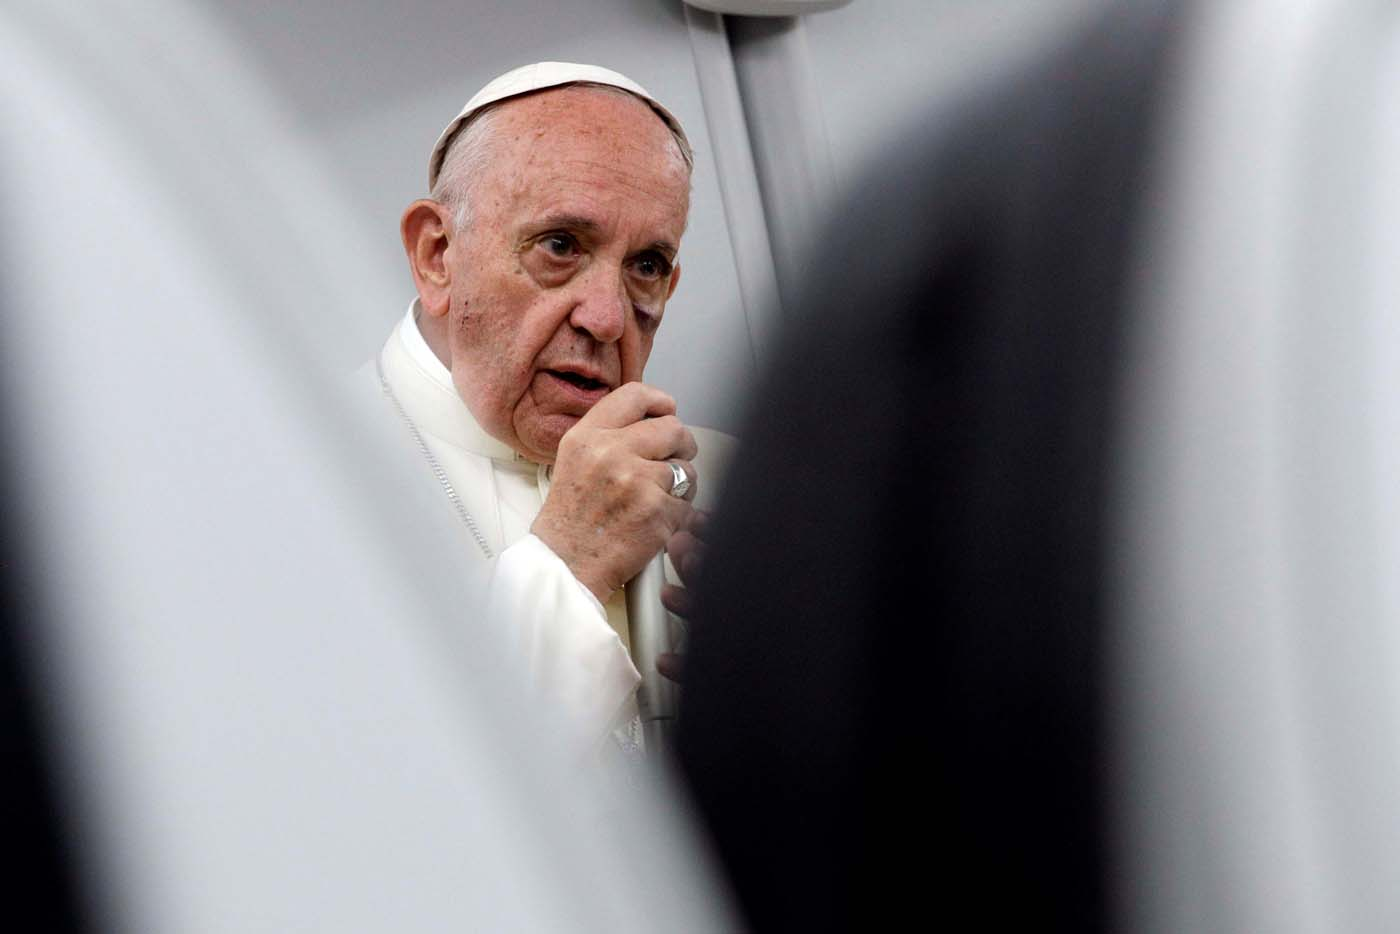 Pope Francis talks to journalists during a press conference aboard a plane flight to Rome at the end of his visit to Colombia, September 11, 2017. REUTERS/Andrew Medichini/Pool